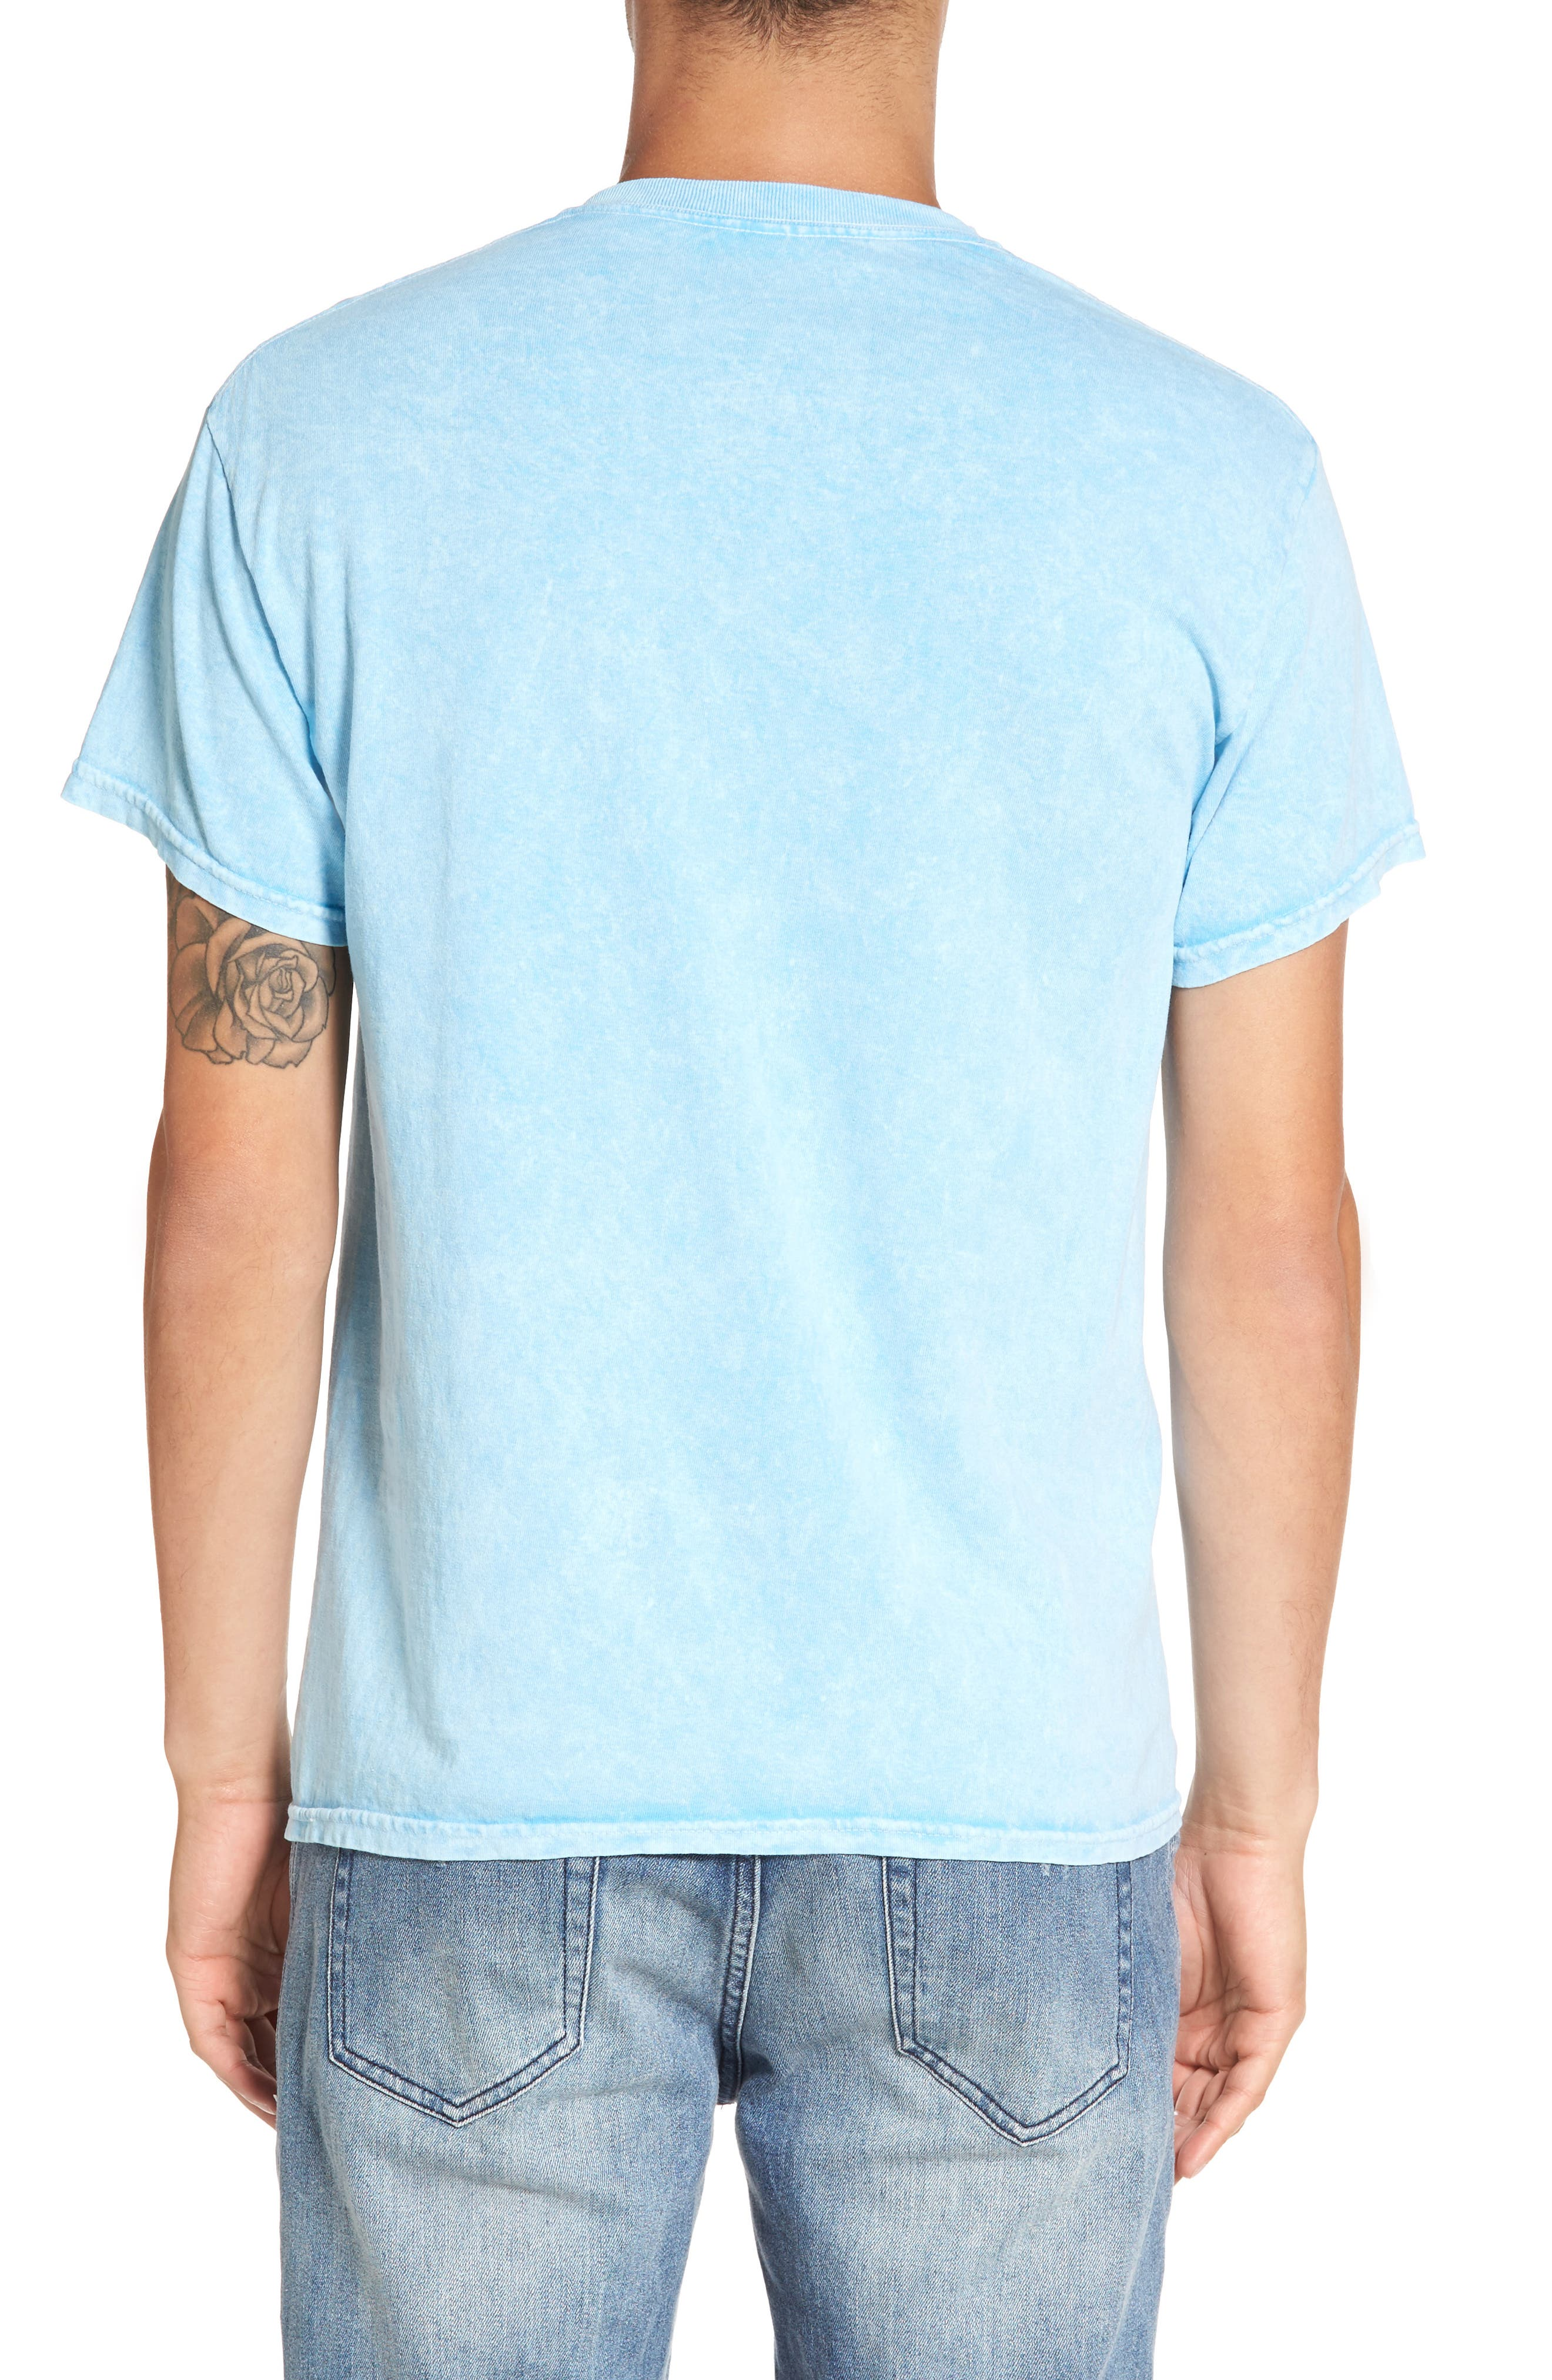 Alternate Image 2  - The Rail Washed Graphic T-Shirt